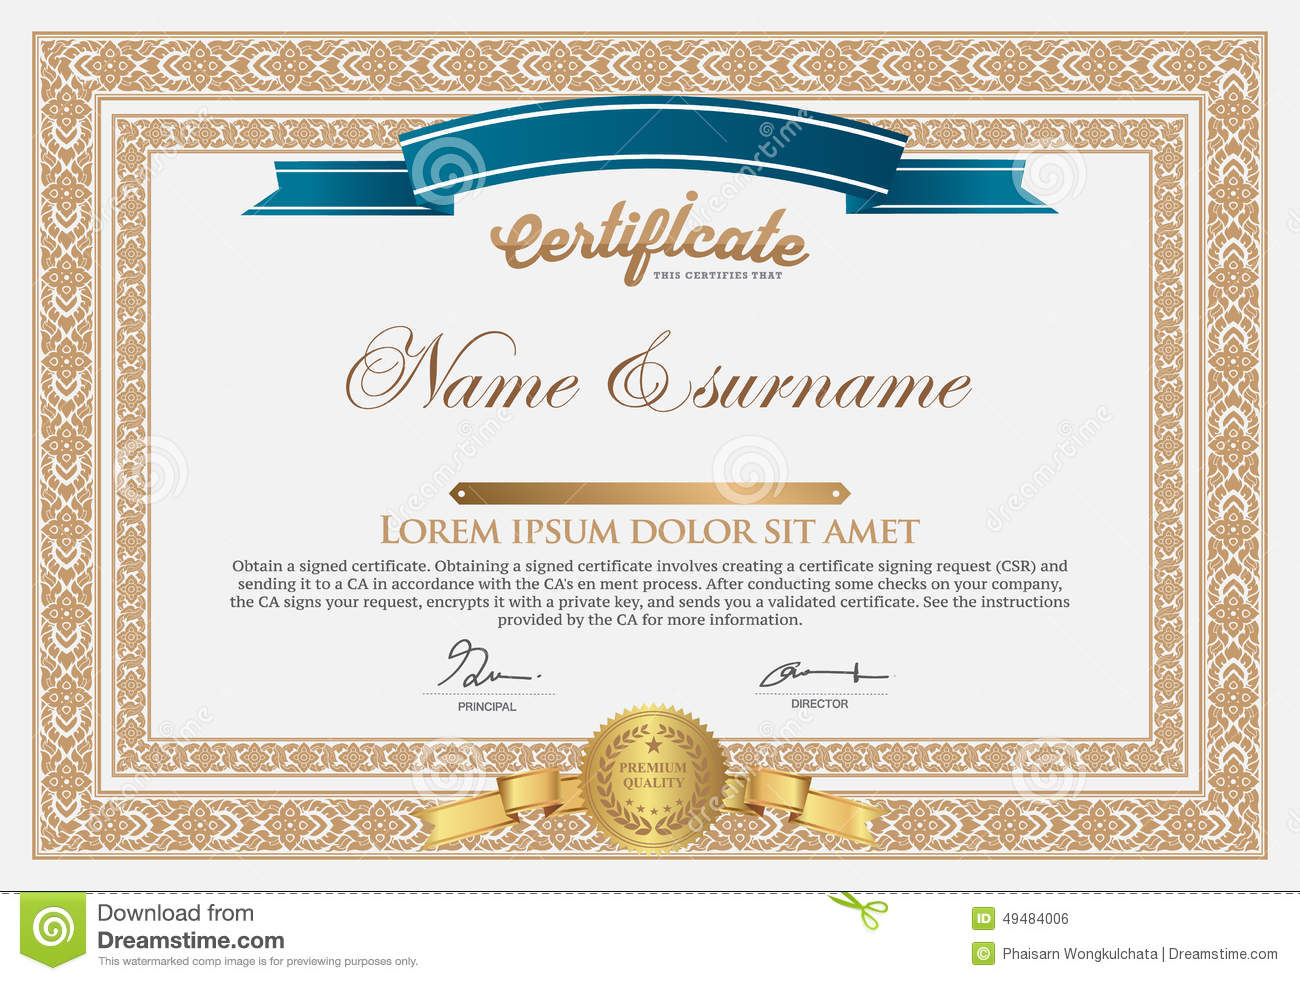 Certificate Design Template Stock Vector Illustration Of Design Certificates 49484006